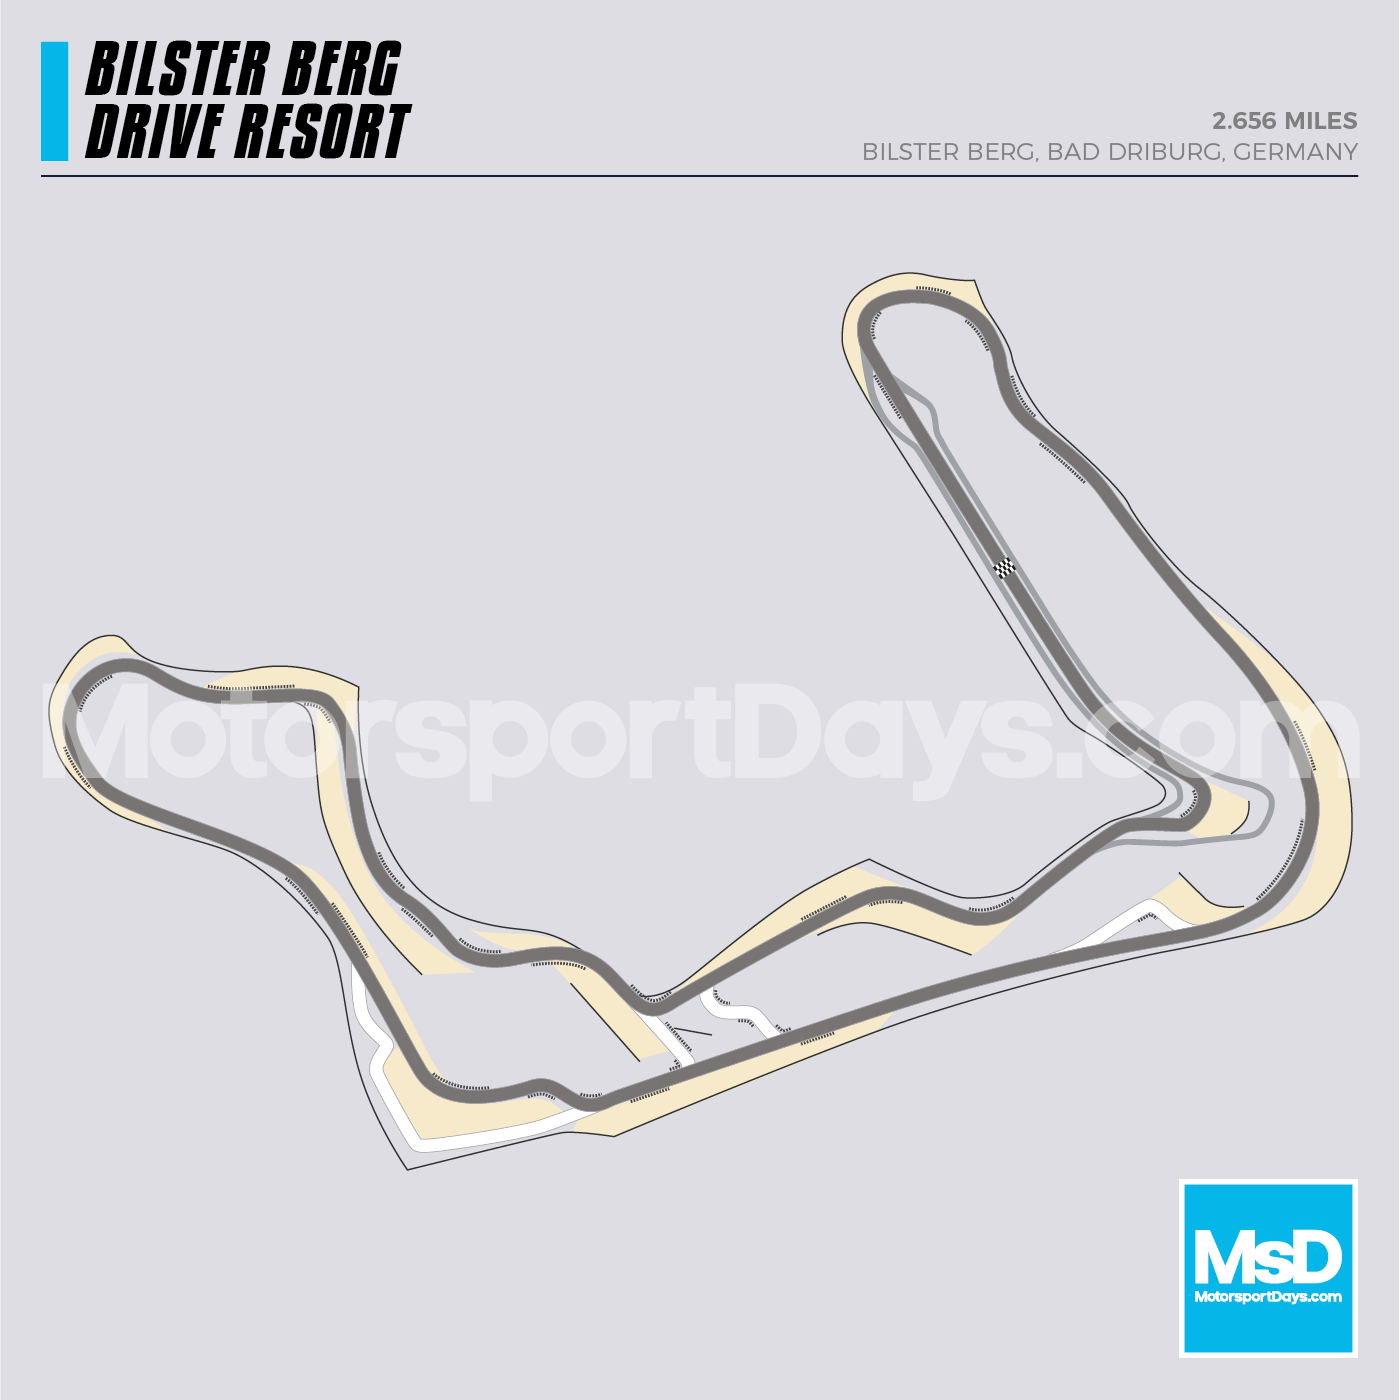 ilsterberg-Circuit-track-map